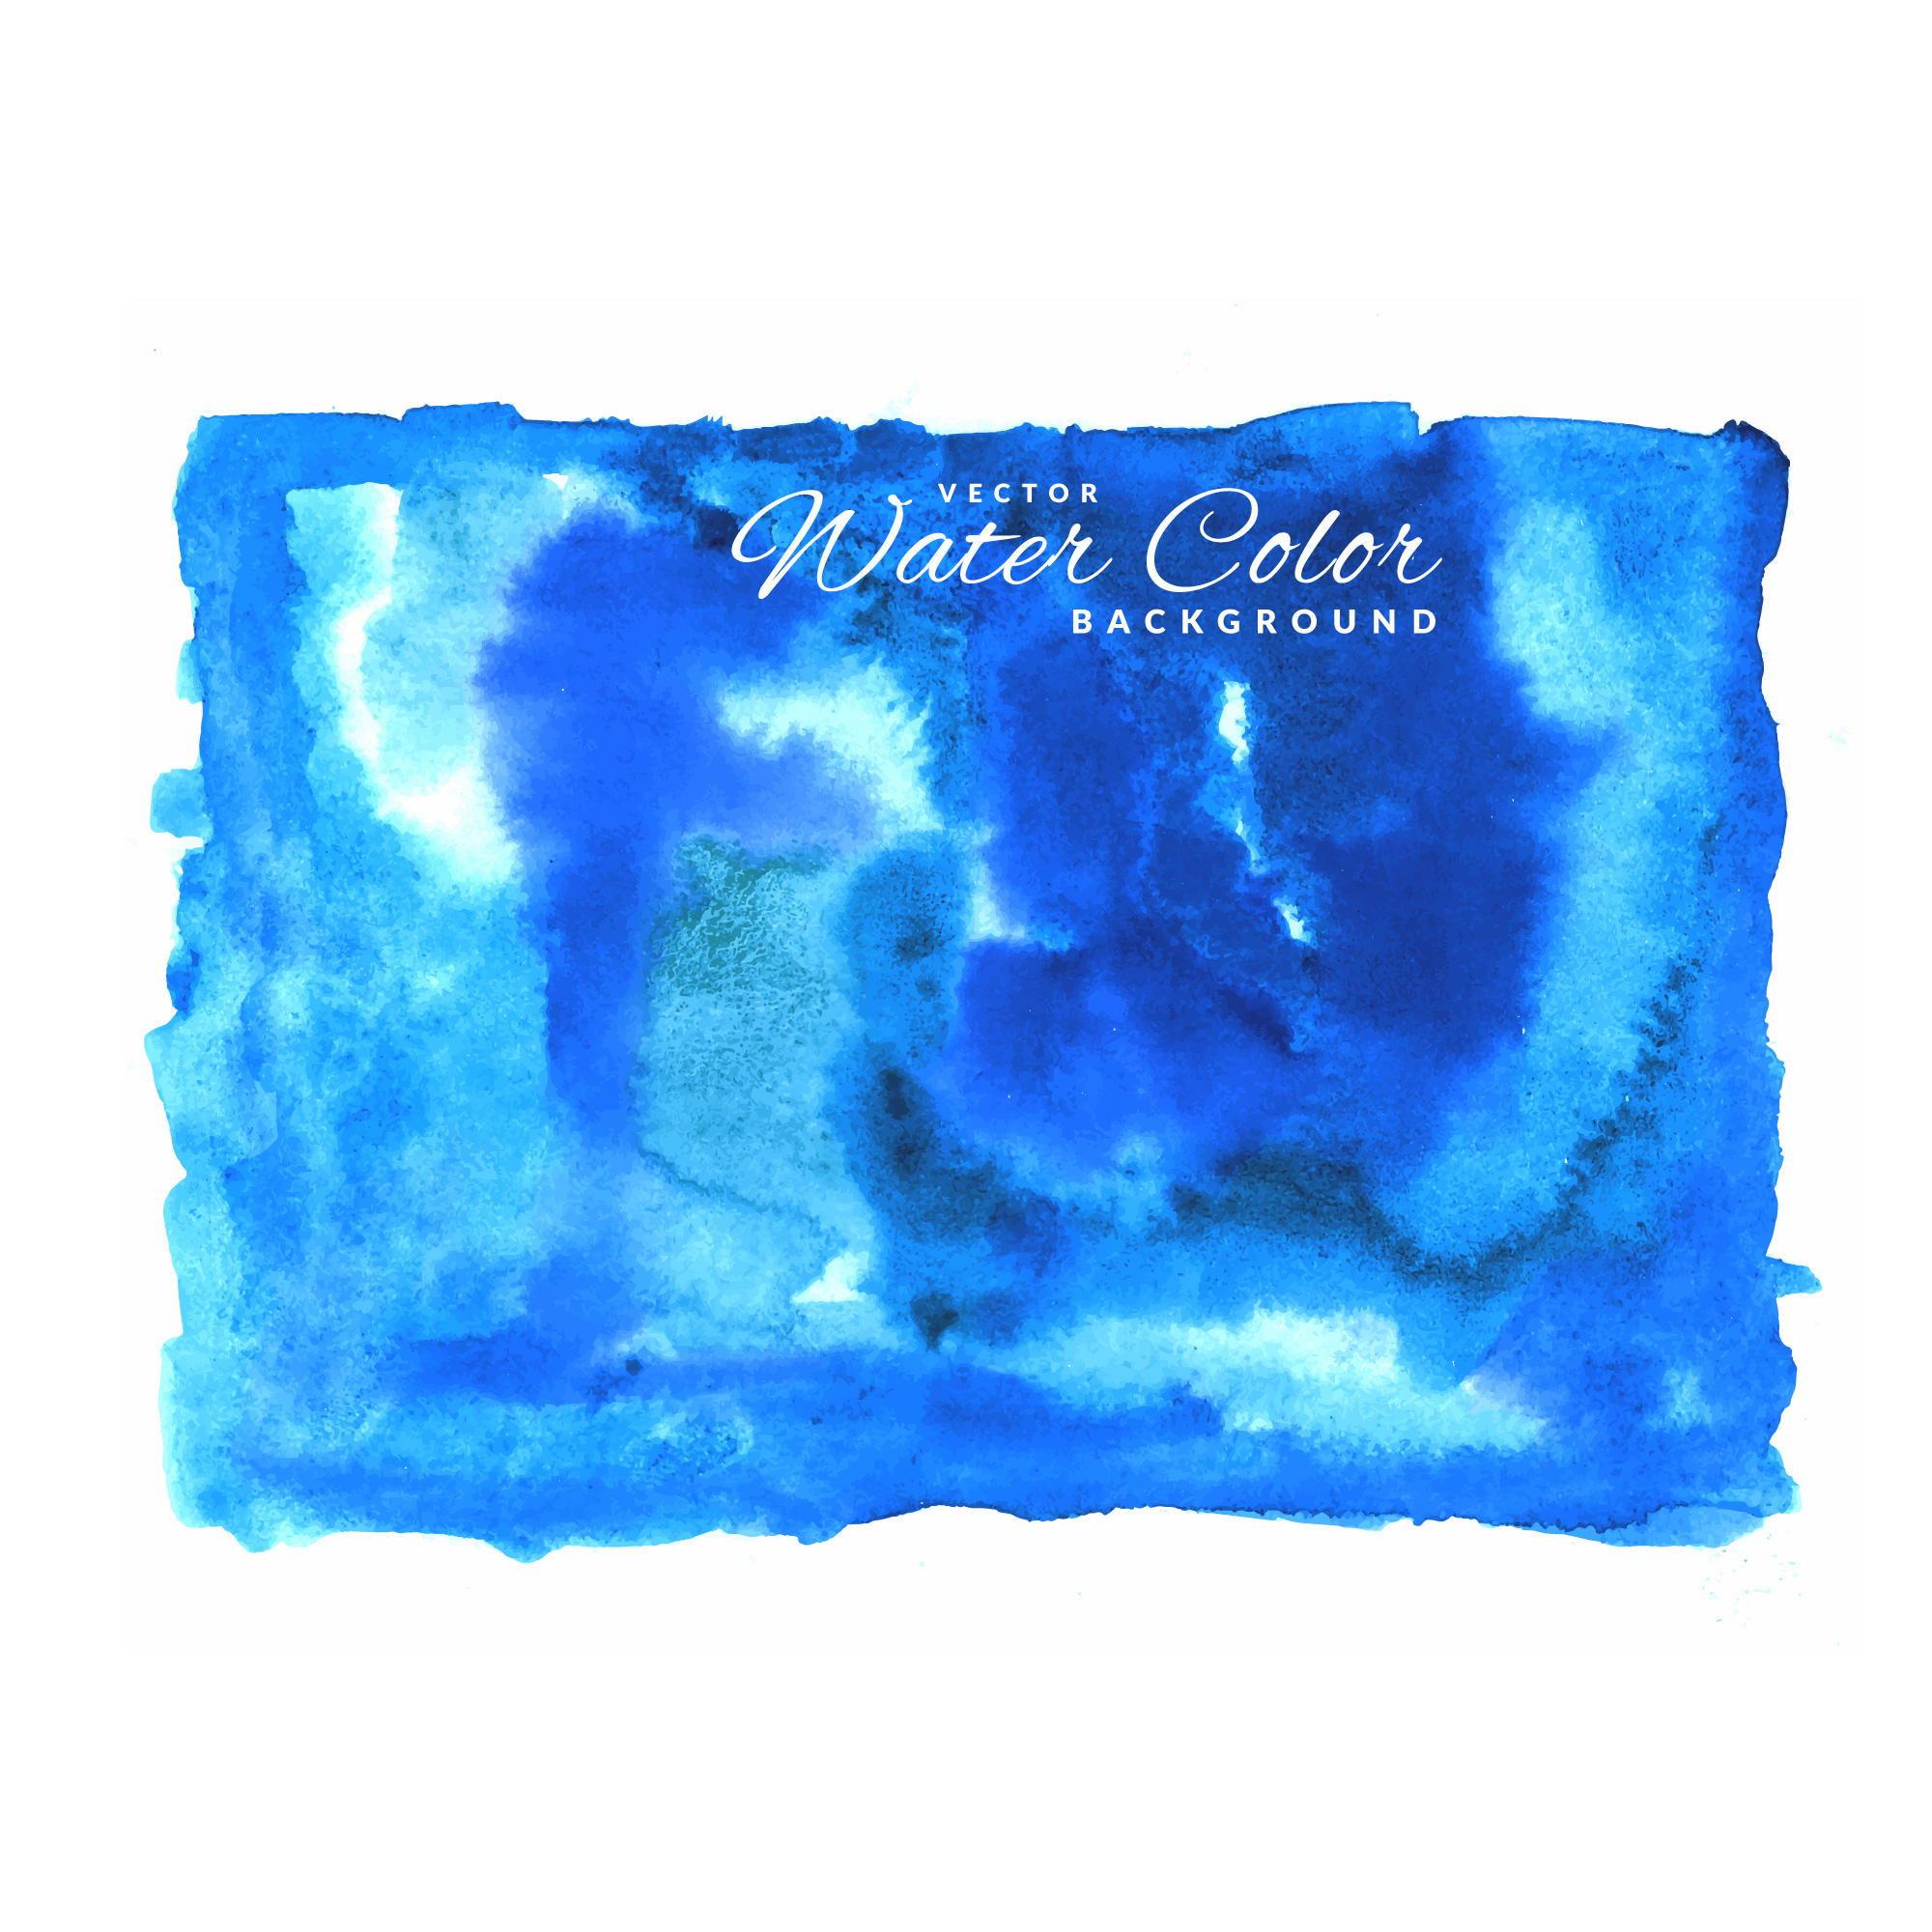 Blue vector water color background